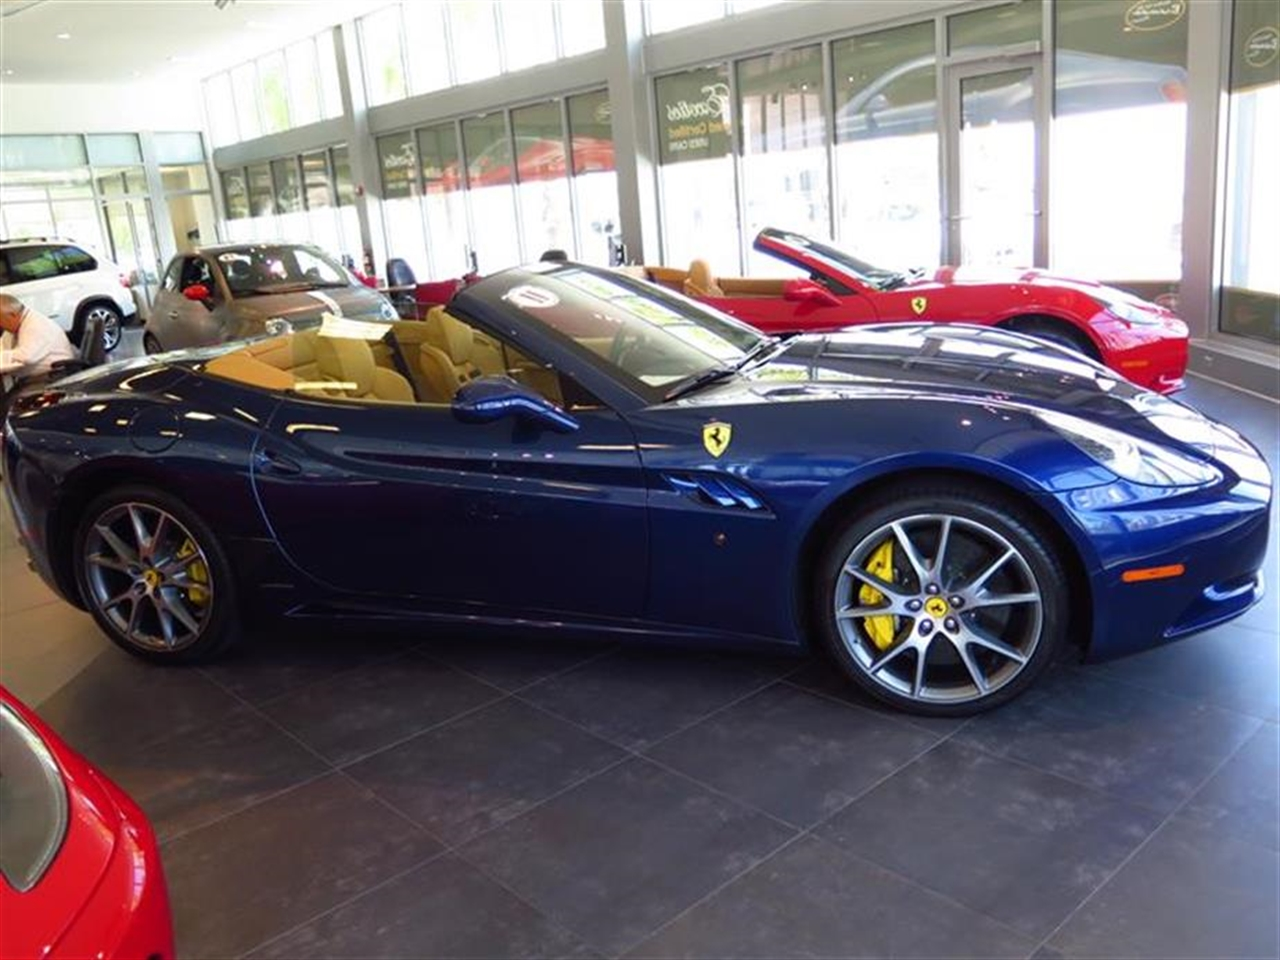 2011 FERRARI CALIFORNIA 2dr Conv 1312 miles 12V front pwr outlets 2010 5050 folding rear bucke